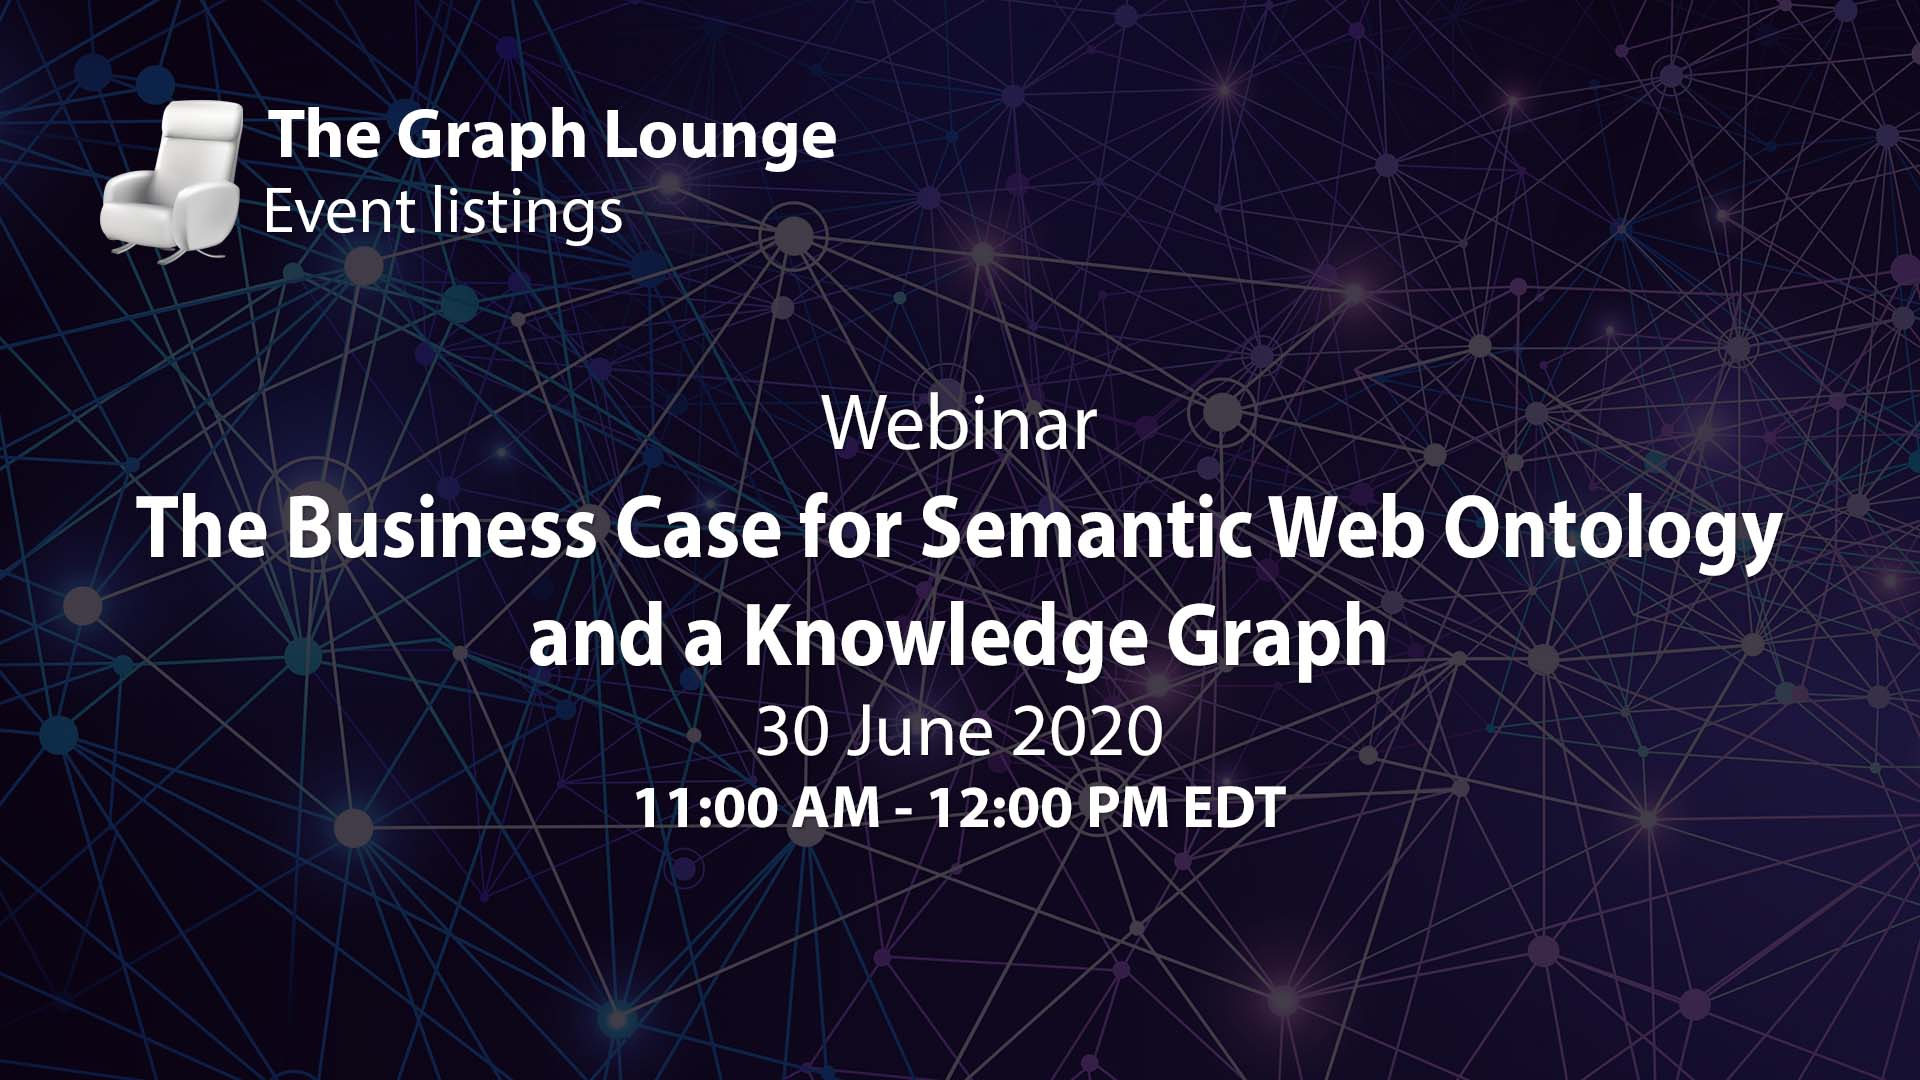 The Business Case for Semantic Web Ontology and a Knowledge Graph